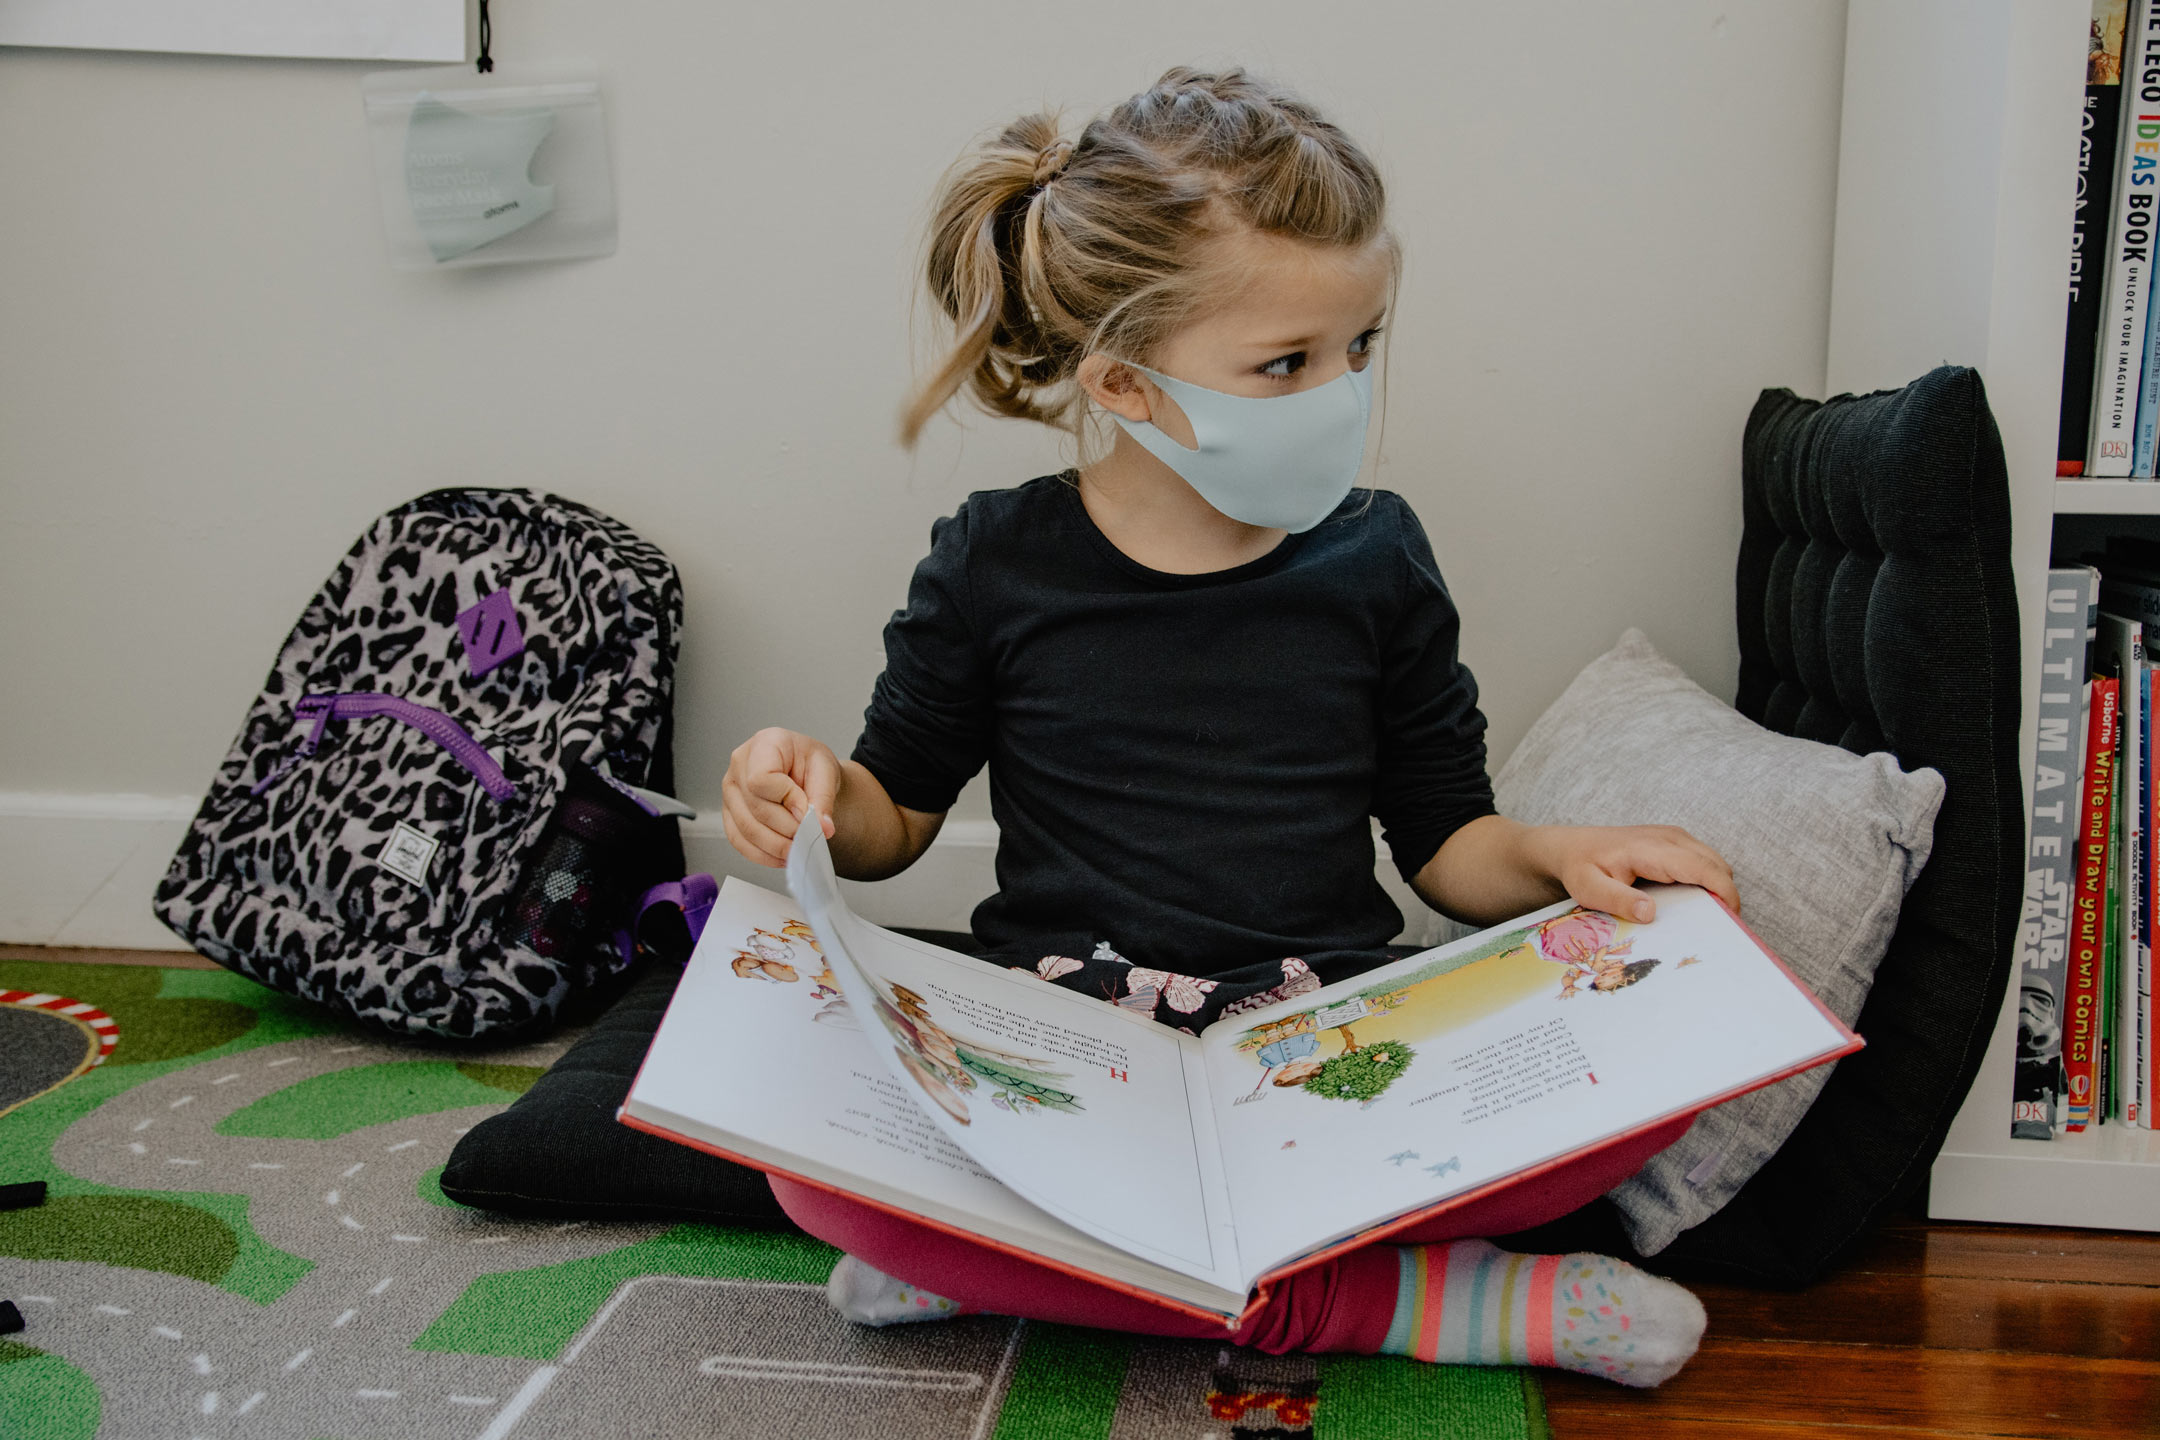 young-school-girl-reading-with-mask-on-2160